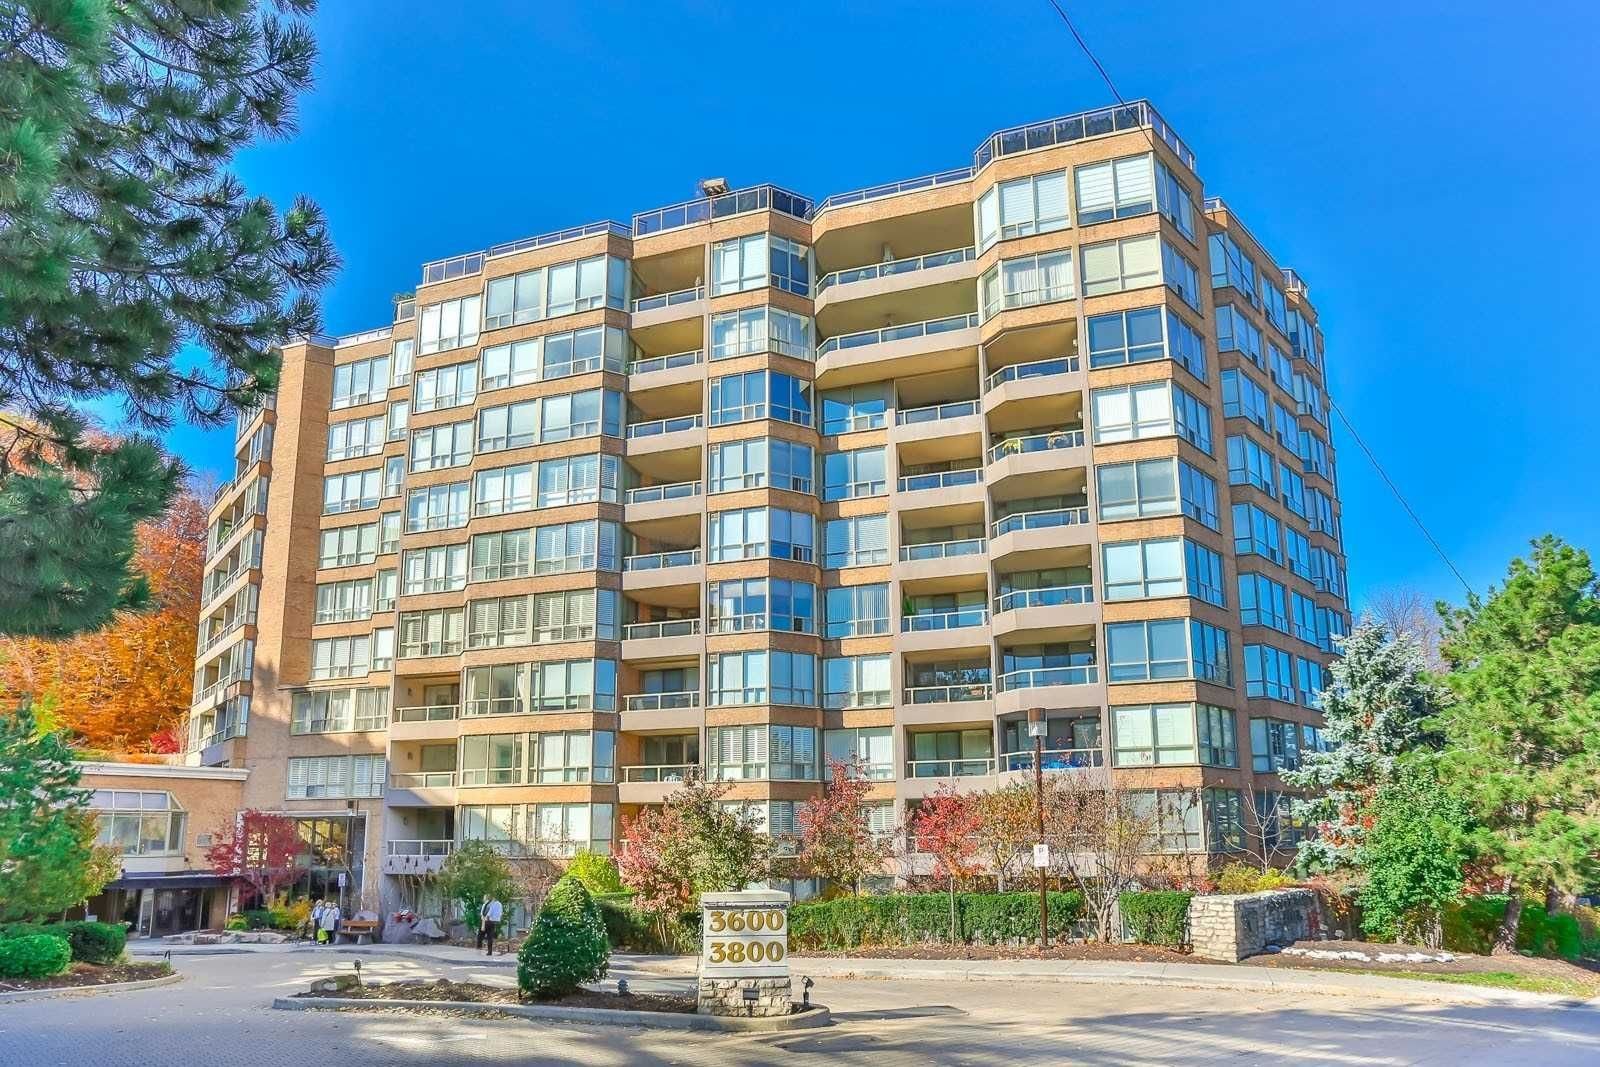 3800 Yonge St. This condo at Governor's Hill I Condos is located in  North York, Toronto